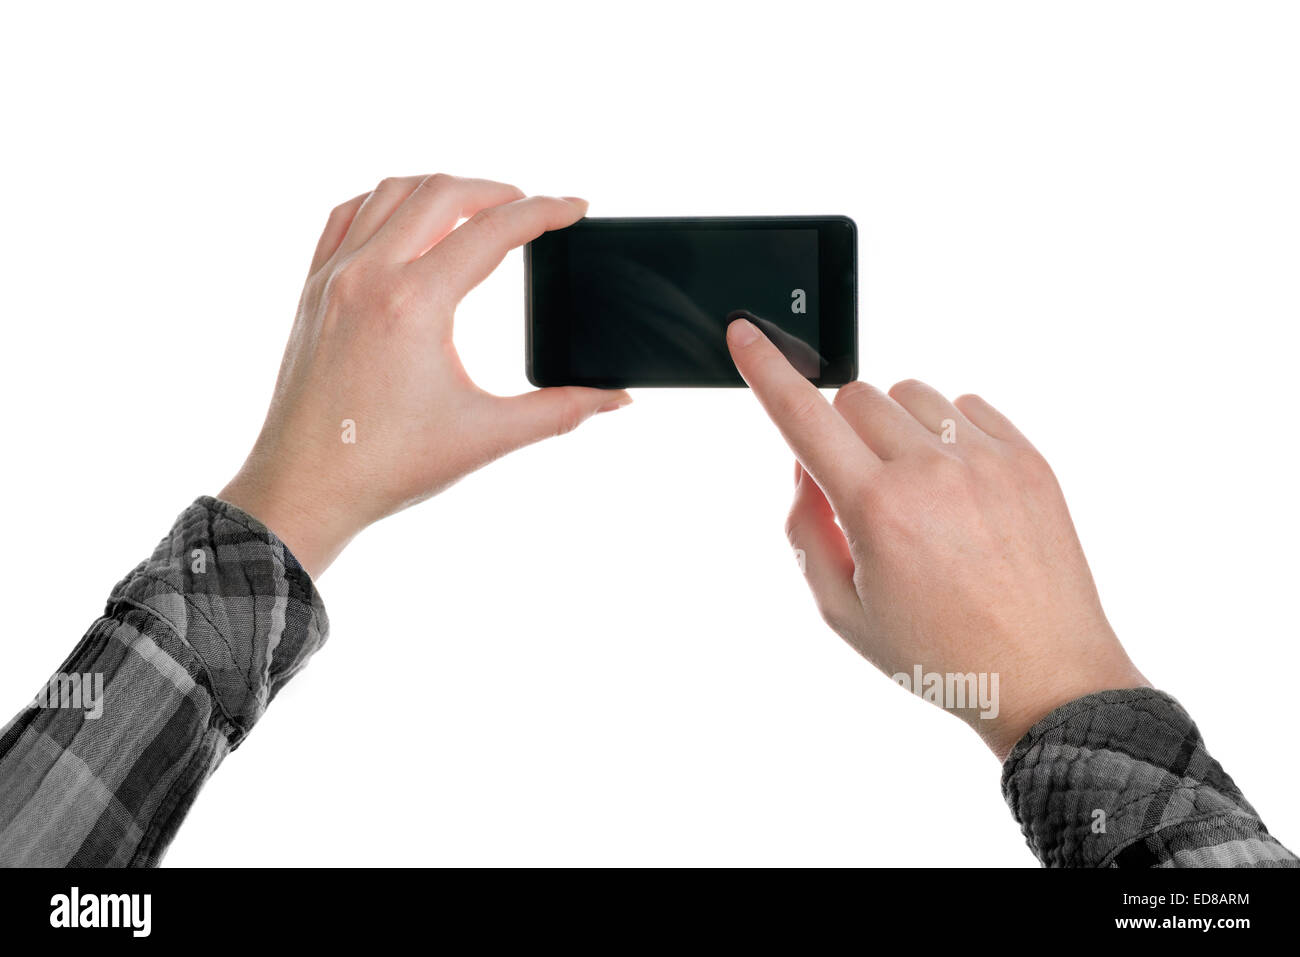 Woman taking snapshot pictures with mobile smart phone application, hand holding device isolated on white background - Stock Image